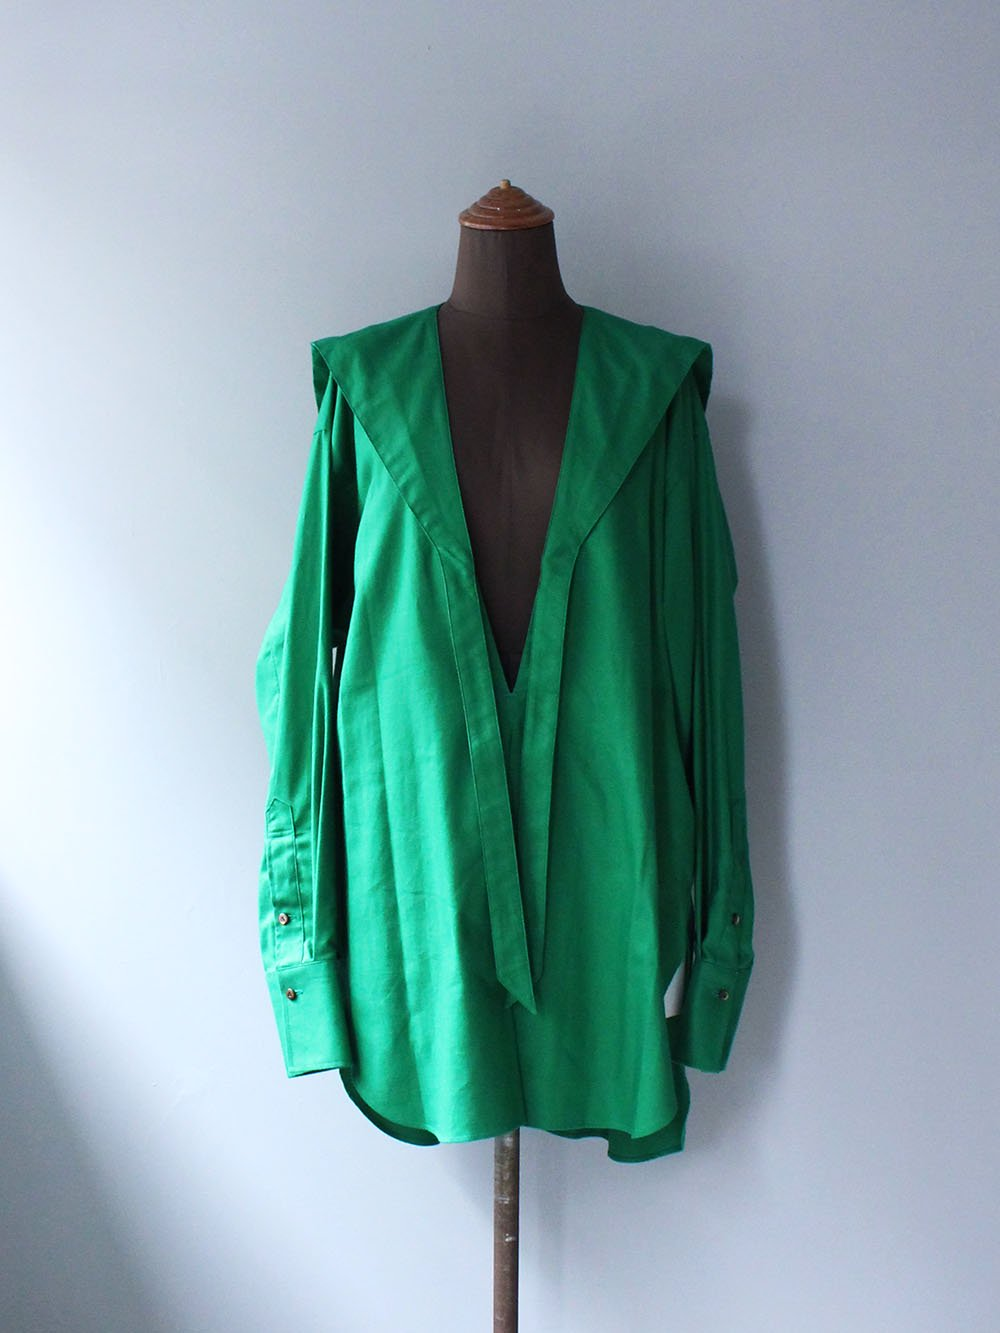 """<img class='new_mark_img1' src='https://img.shop-pro.jp/img/new/icons8.gif' style='border:none;display:inline;margin:0px;padding:0px;width:auto;' />JUN MIKAMI """" Cotton Cashmere Tai Collar Blouse (green)"""